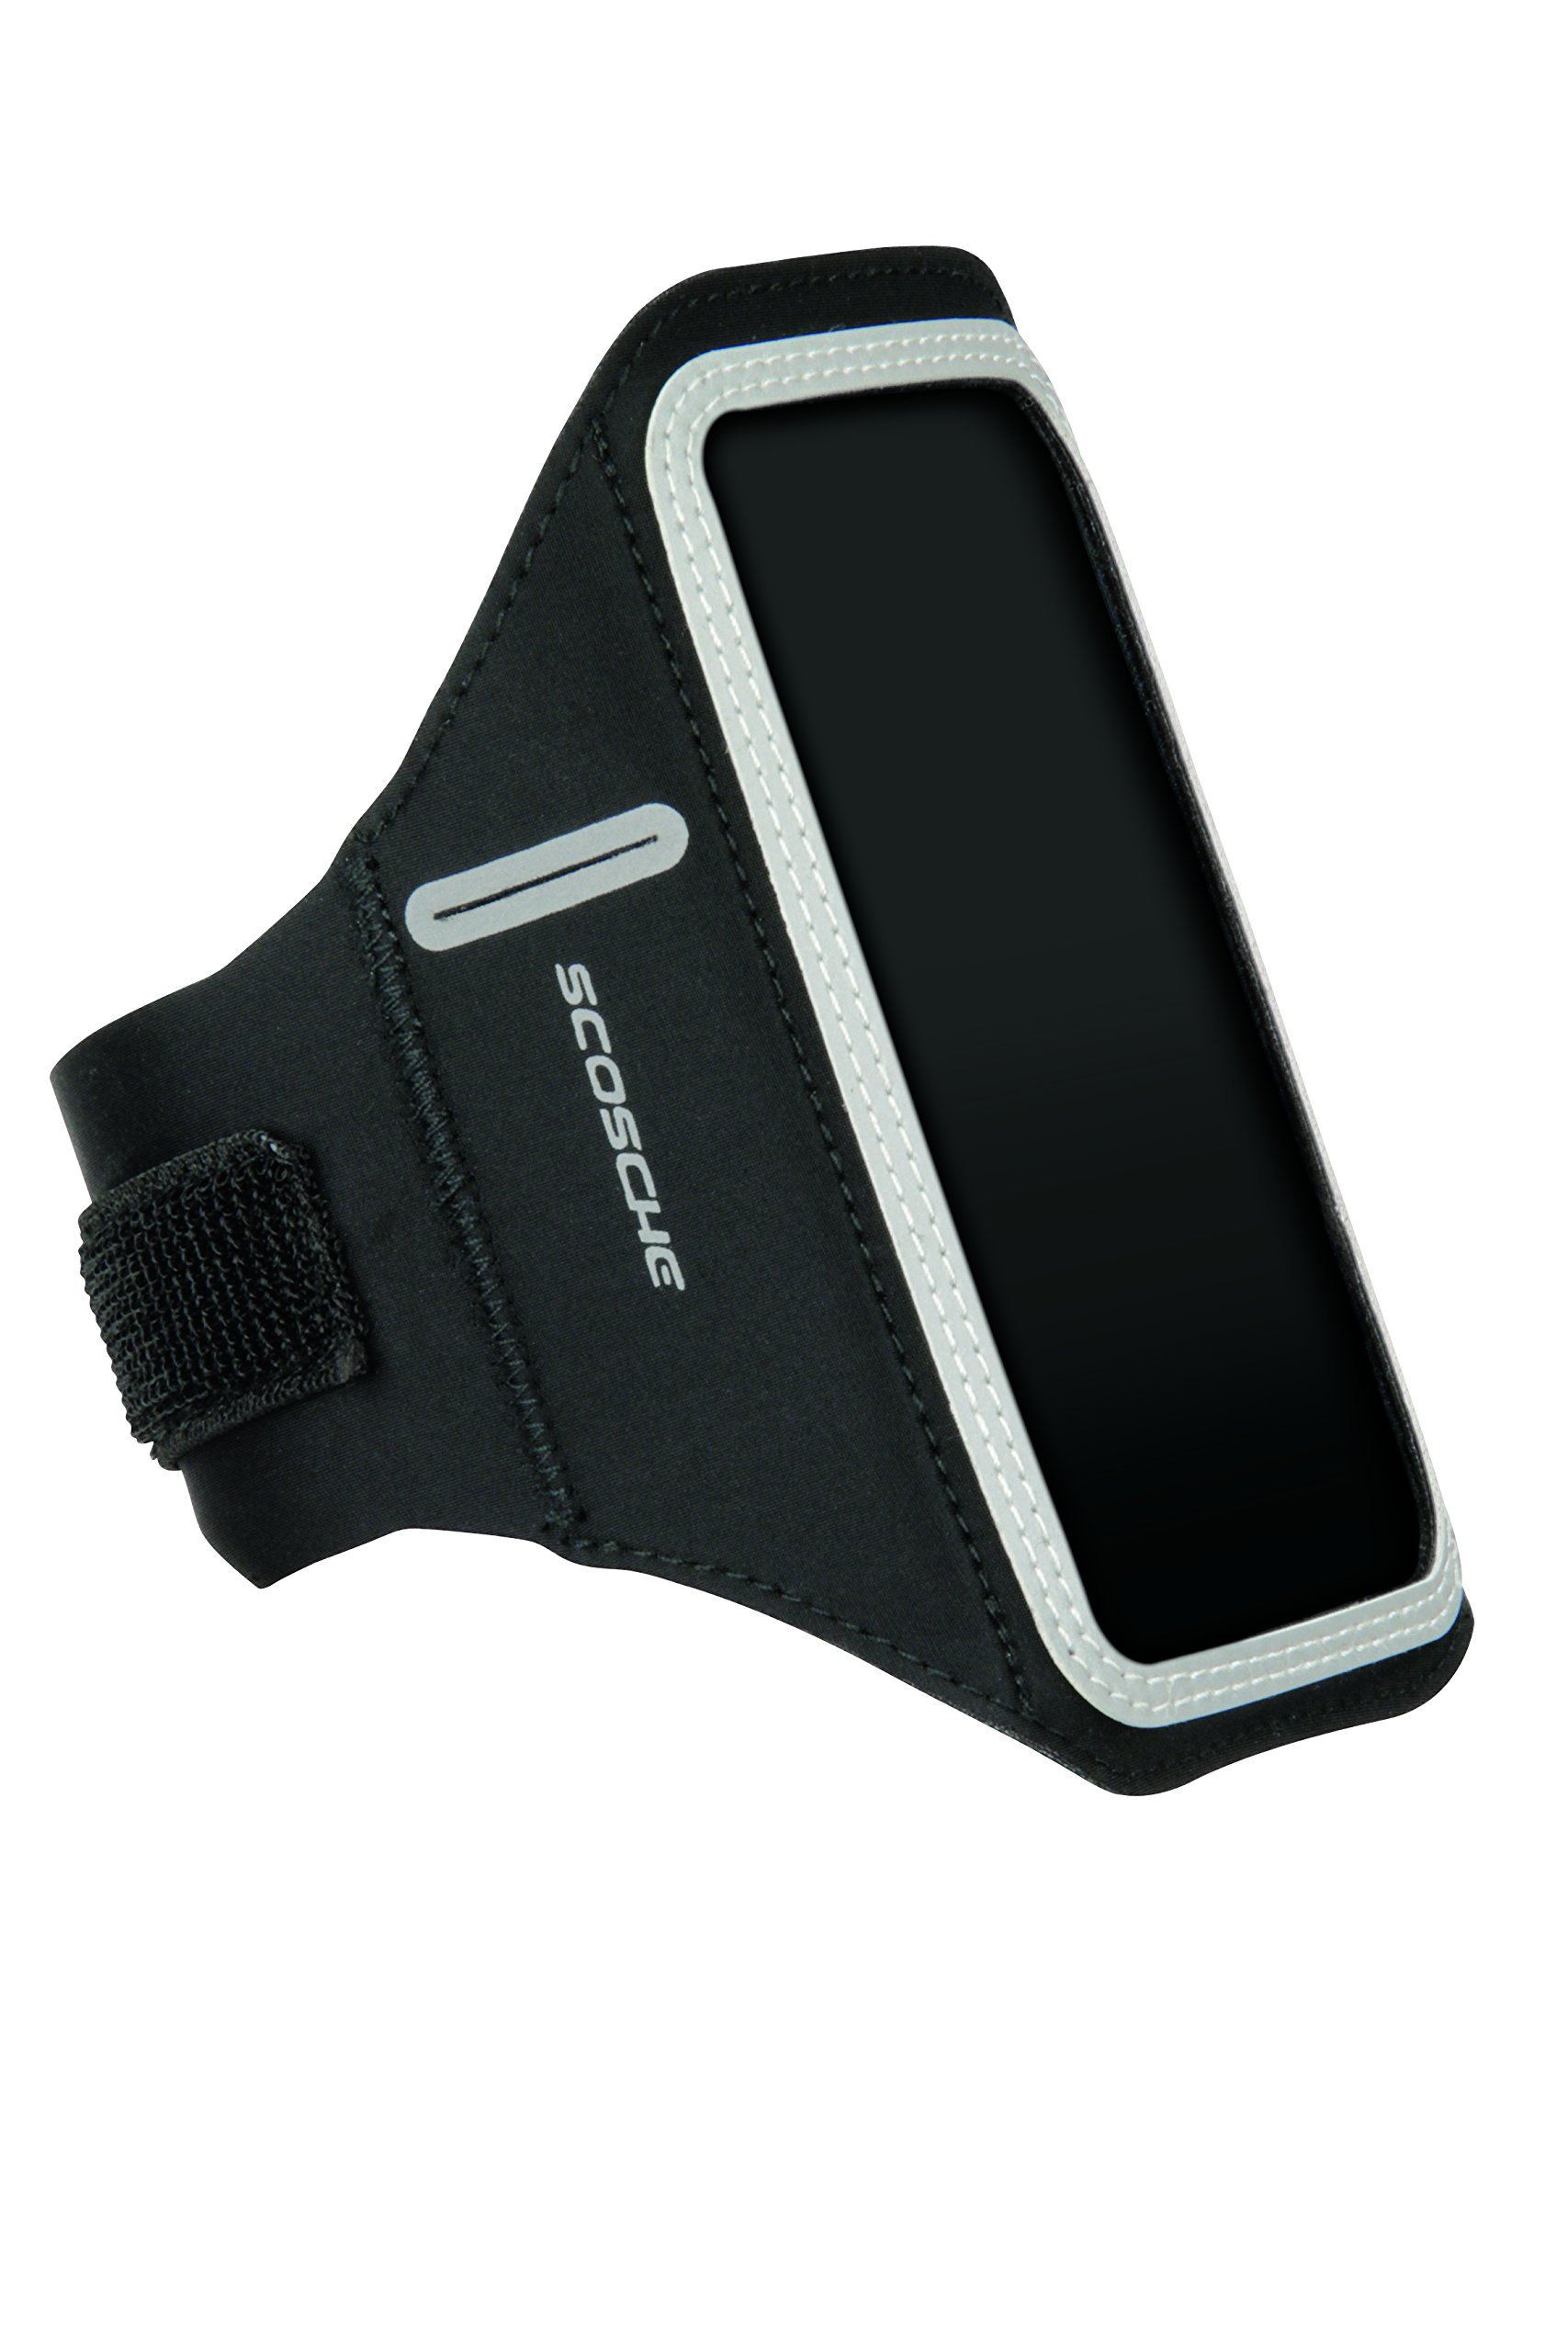 SCOSCHE SoundKase XL Ultra-Light Sport Armband Cell Phone Case for Universal Smartphones - Fits Most Apple, Android, Samsung, HTC, LG and Motorola Devices - Black/Gray - X-Large Armband (HFDABXL)